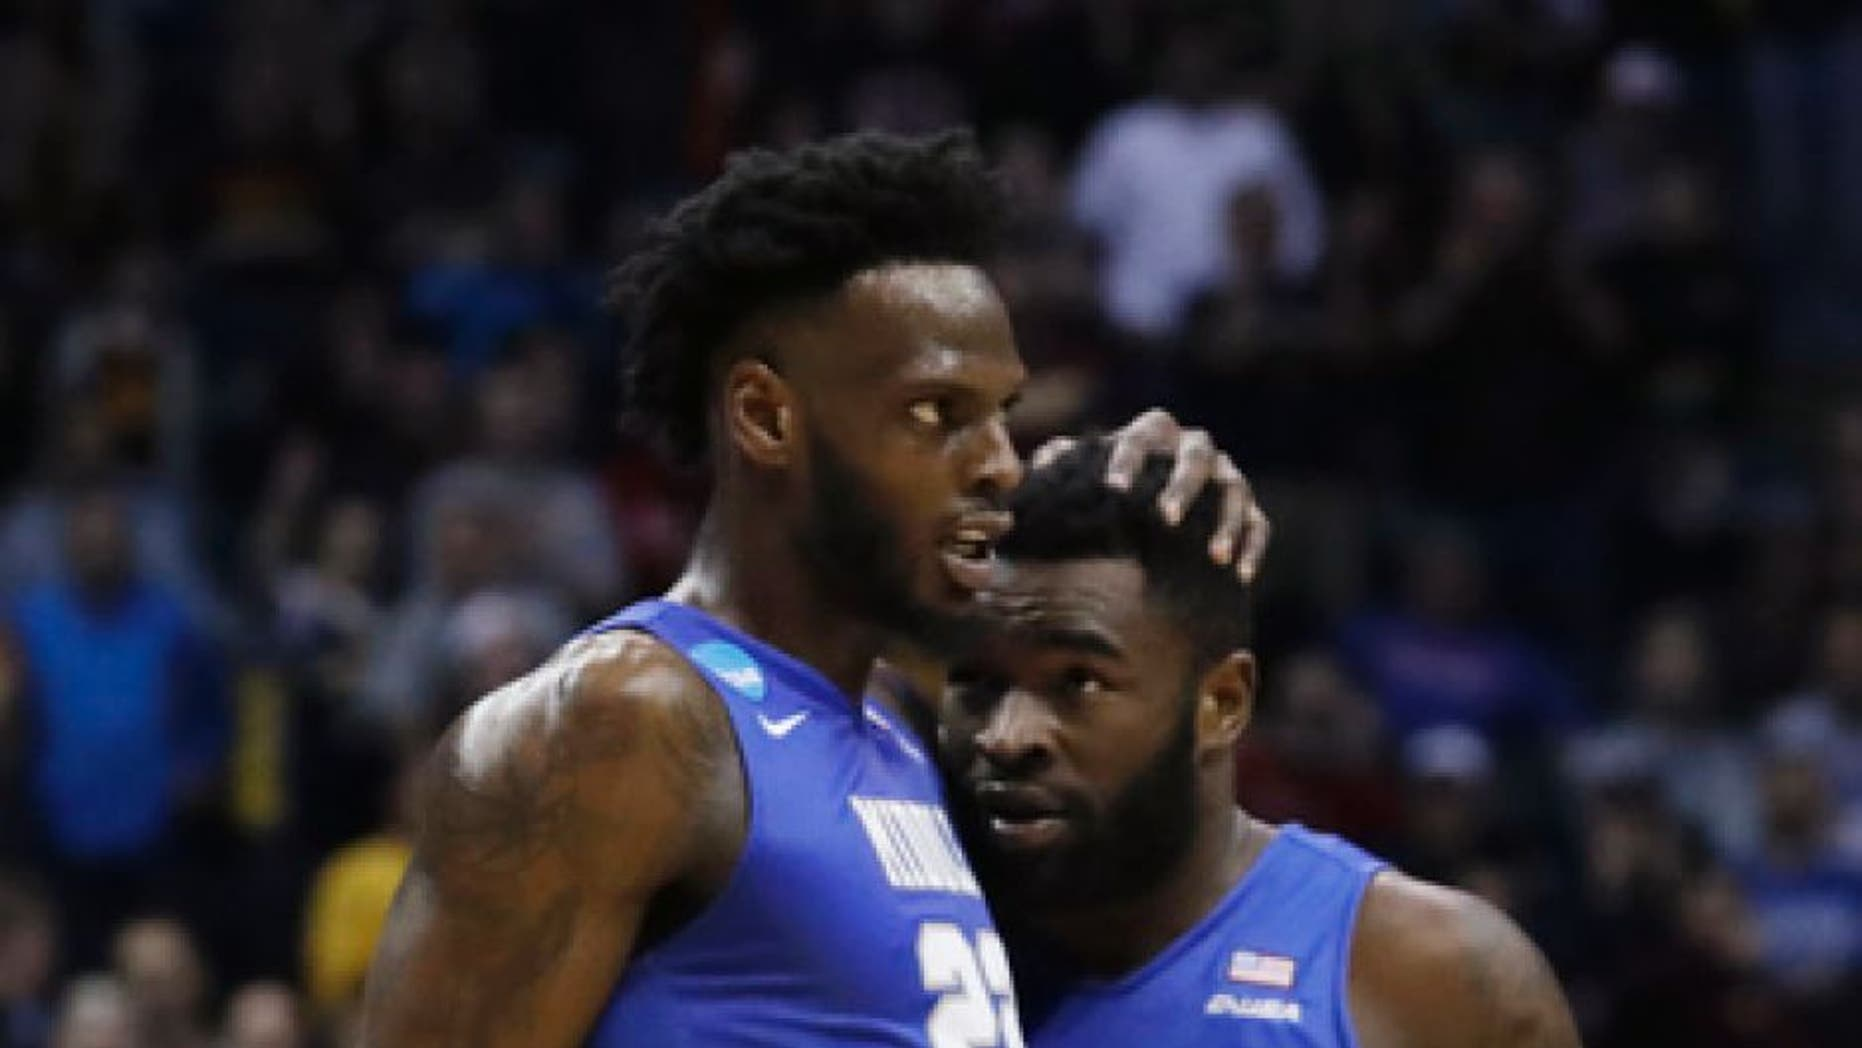 Middle Tennessee State's JaCorey Williams (22) and Giddy Potts (20) celebrate during the second half of an NCAA college basketball tournament first round game against Minnesota Thursday, March 16, 2017, in Milwaukee. Middle Tennessee State won 81-72. (AP Photo/Morry Gash)